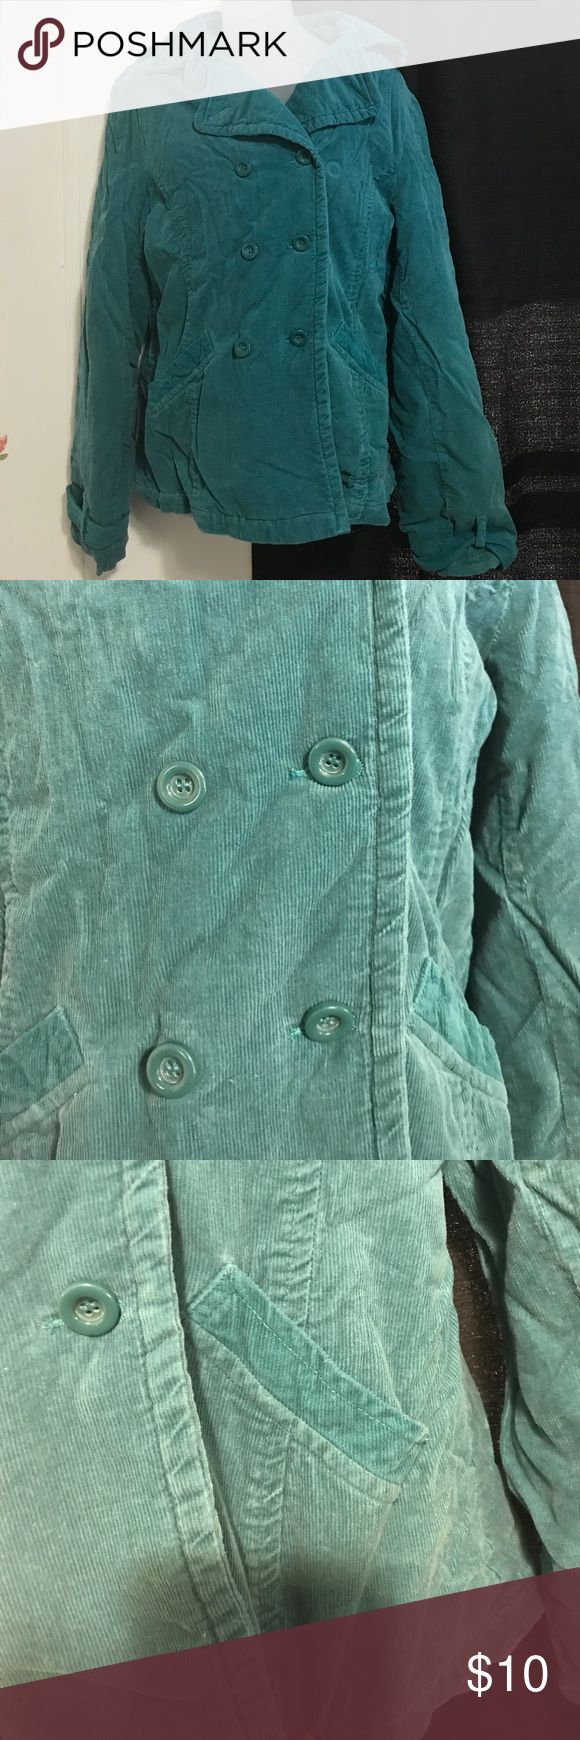 Corduroy teal pea coat style Cute teal corduroy by long elegant legs lined with100% polyester padding 100% polyester shell 100% cotton Long Elegant Legs Jackets & Coats